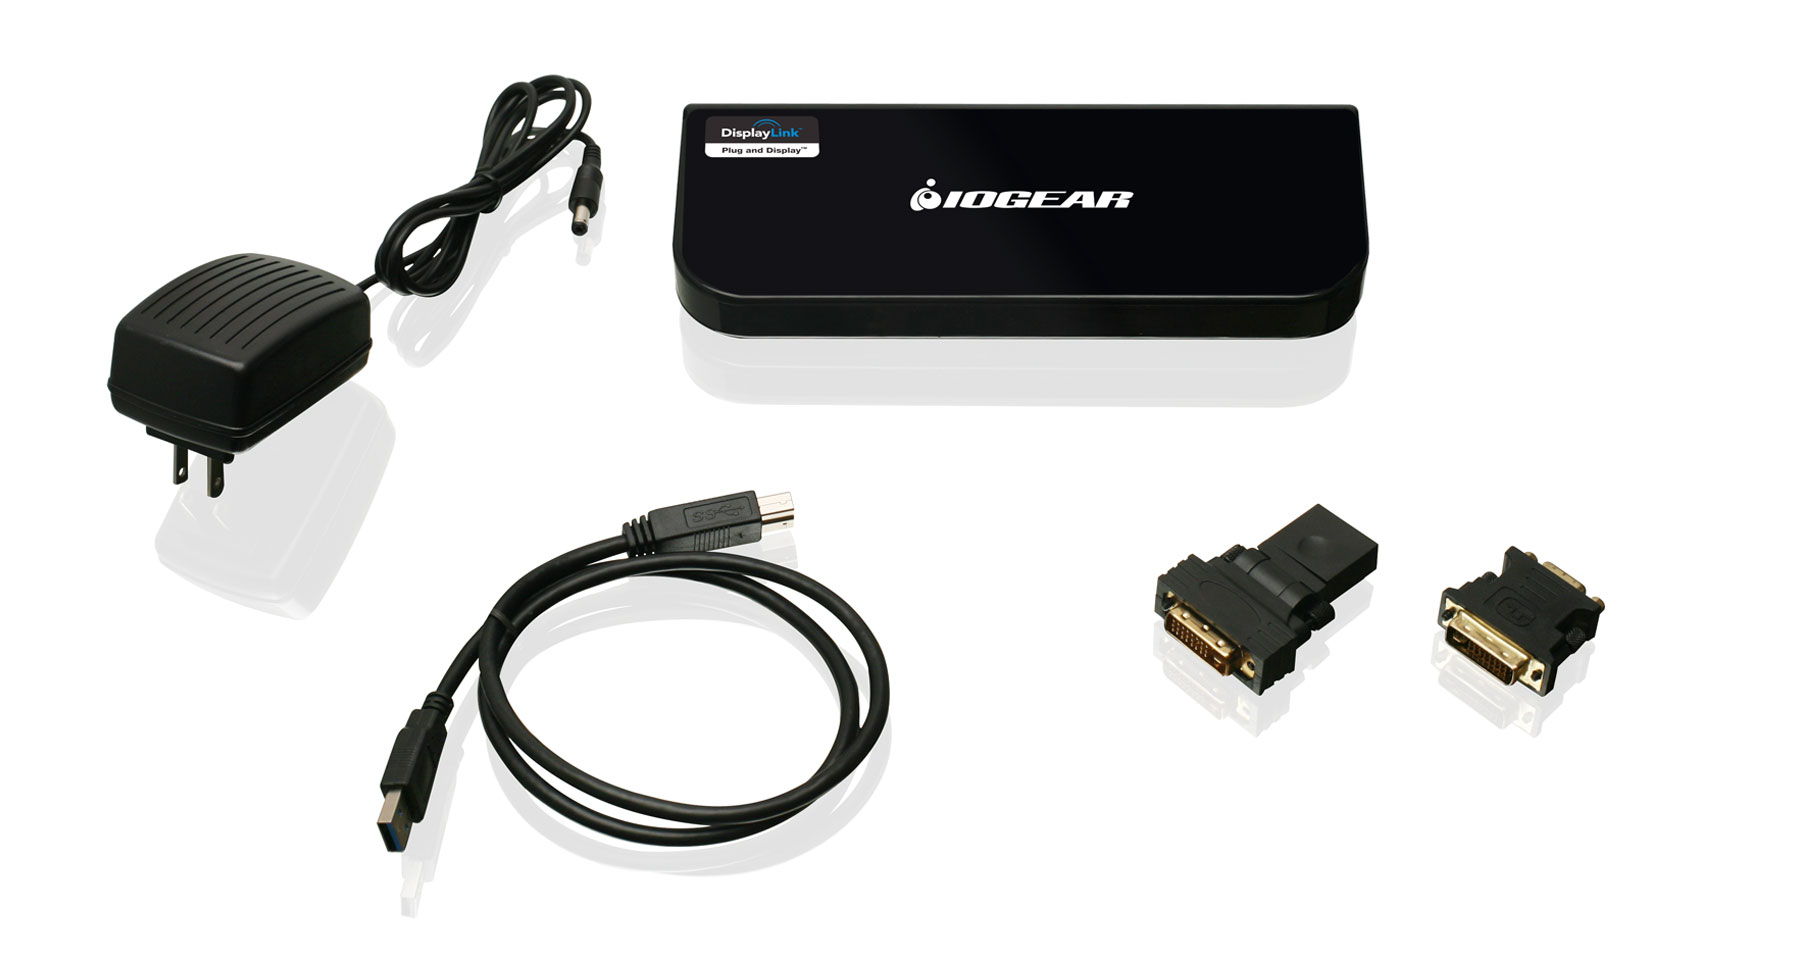 IOGEAR - GUD300 - USB 3 0 Universal Docking Station with Power Adapter